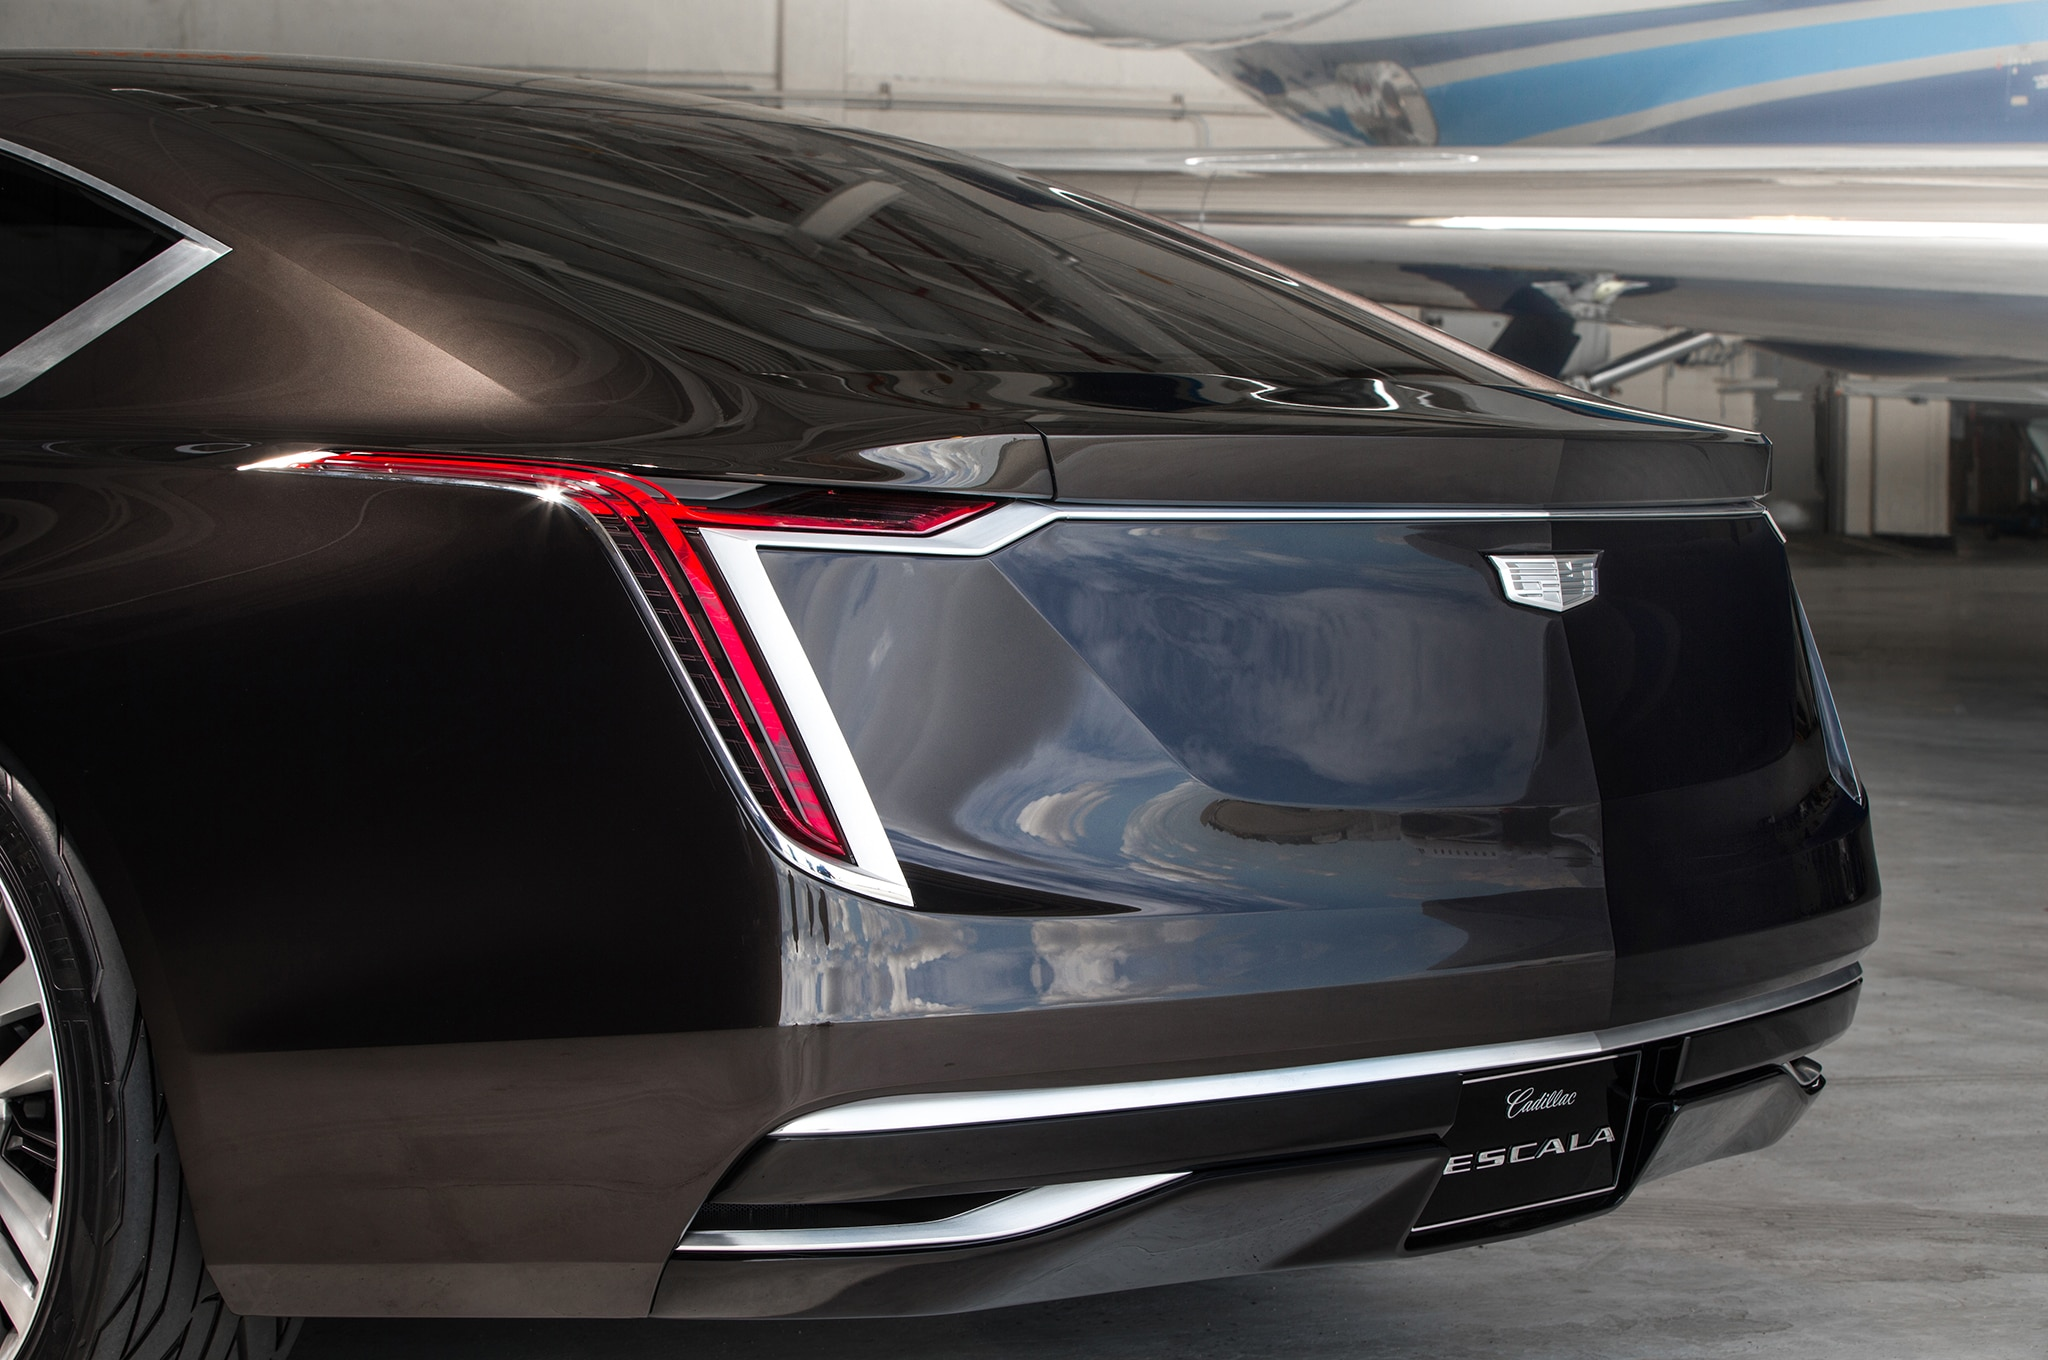 cadillac escalade concept escala rear esv expect automobile depending starting late early between